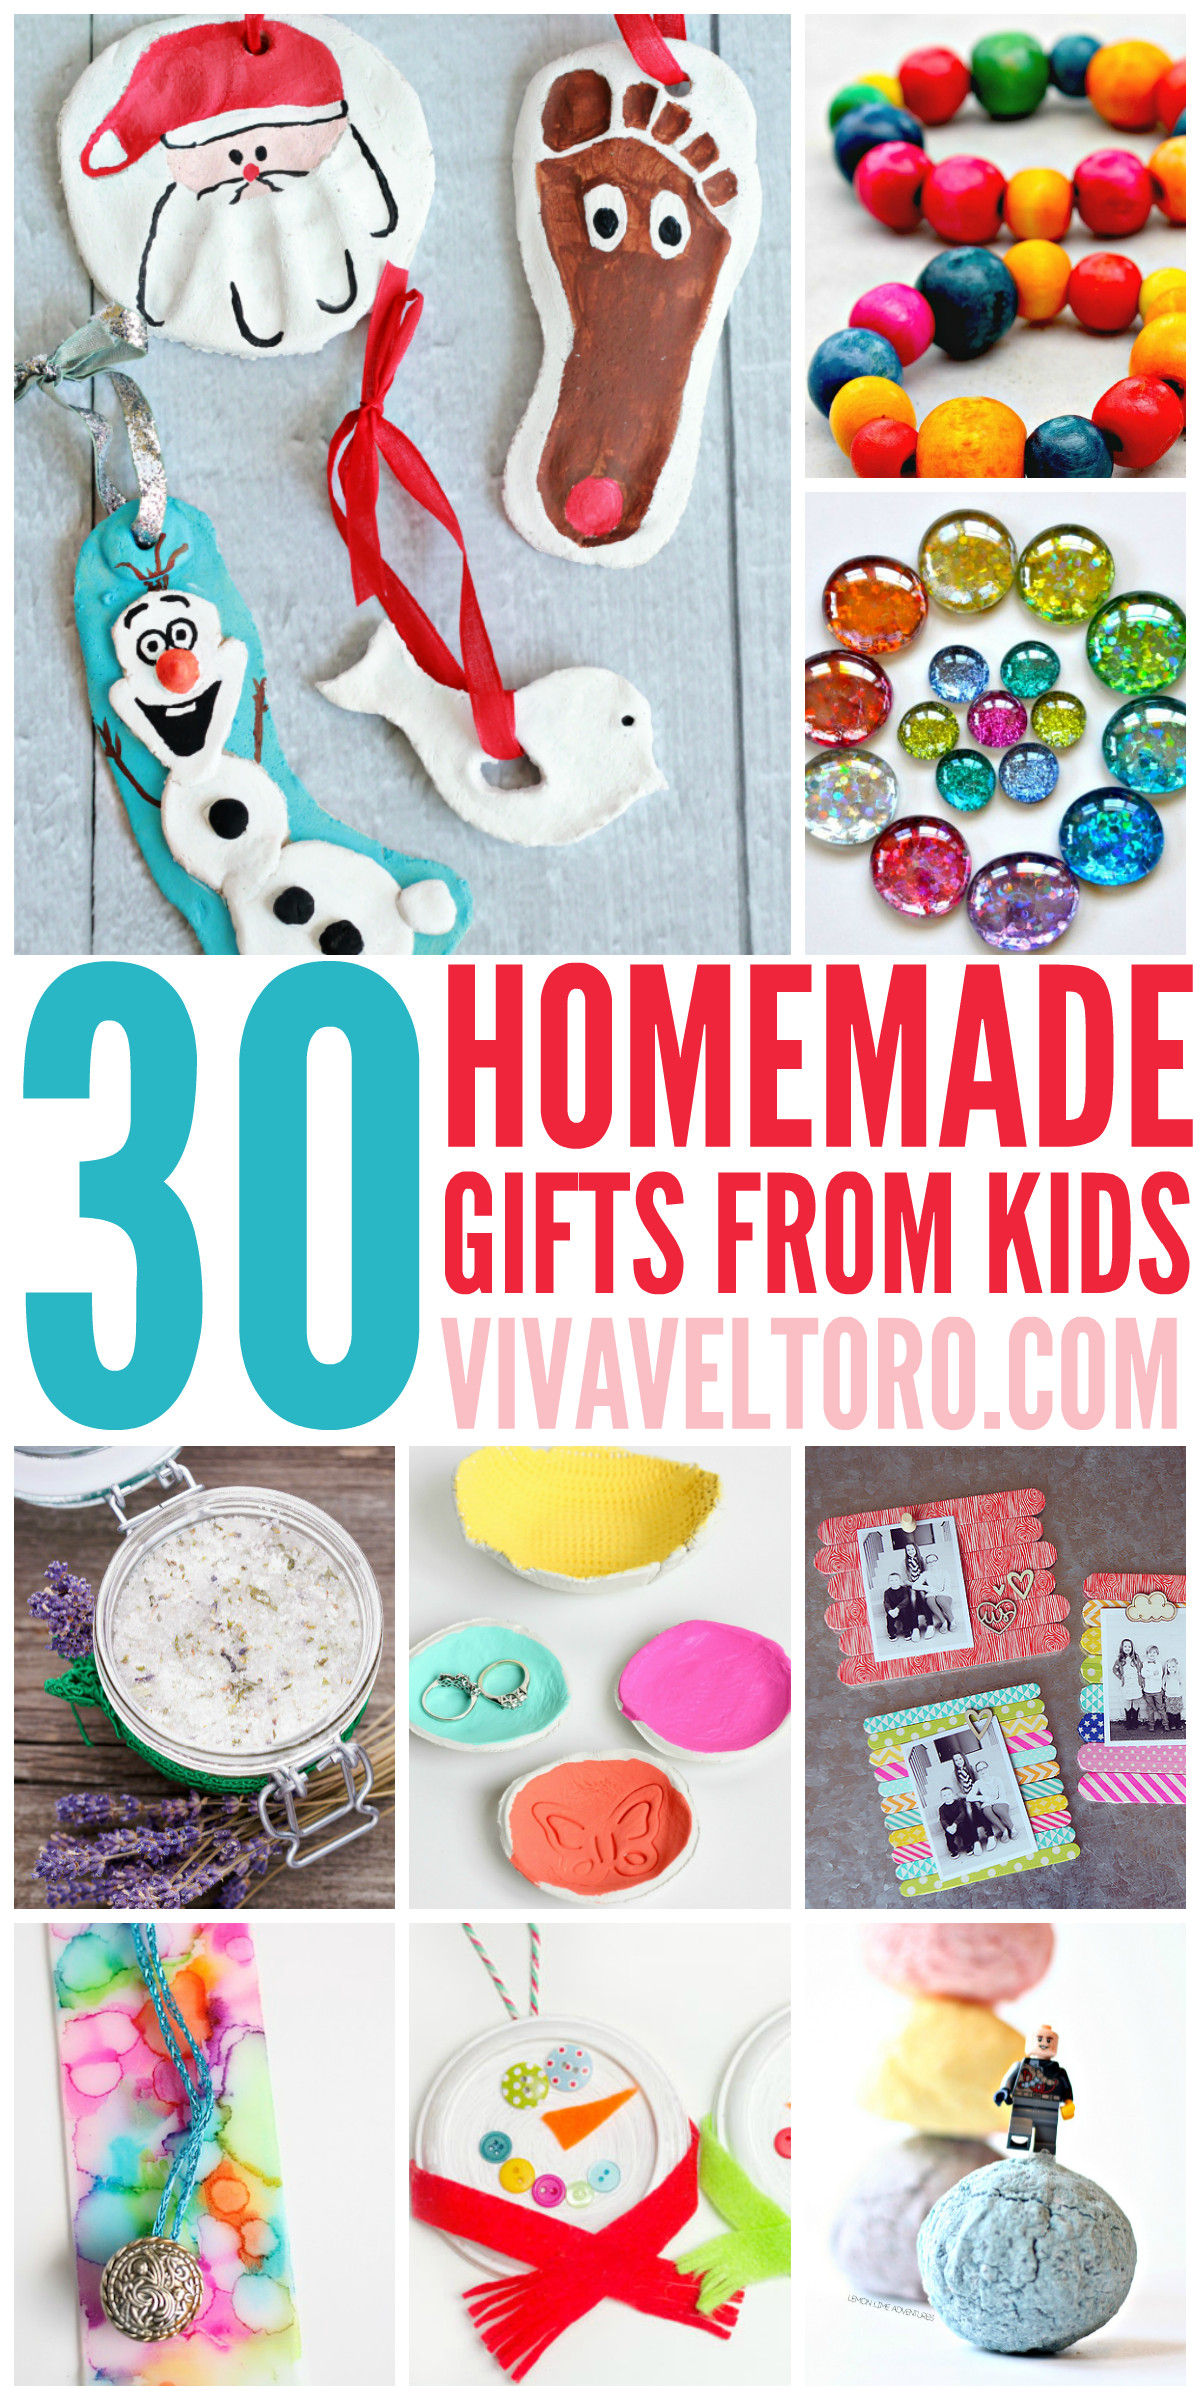 Best ideas about DIY Kids Gifts . Save or Pin This list of full of crafts and DIY homemade t ideas Now.